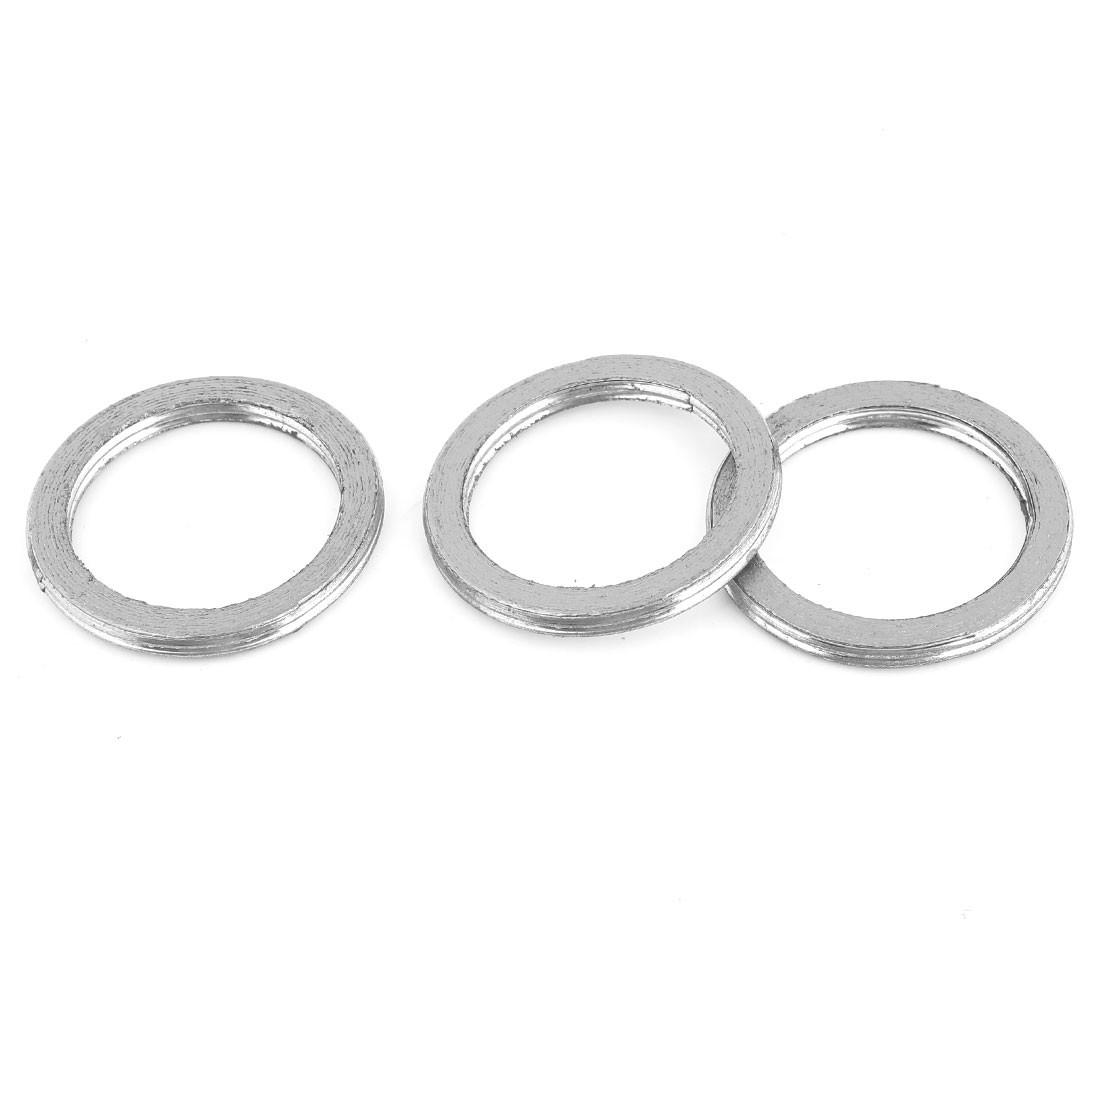 3 Pcs Vehicle Aluminum 40mm Inside Dia Engine Silencer Exhaust Gasket Assembly